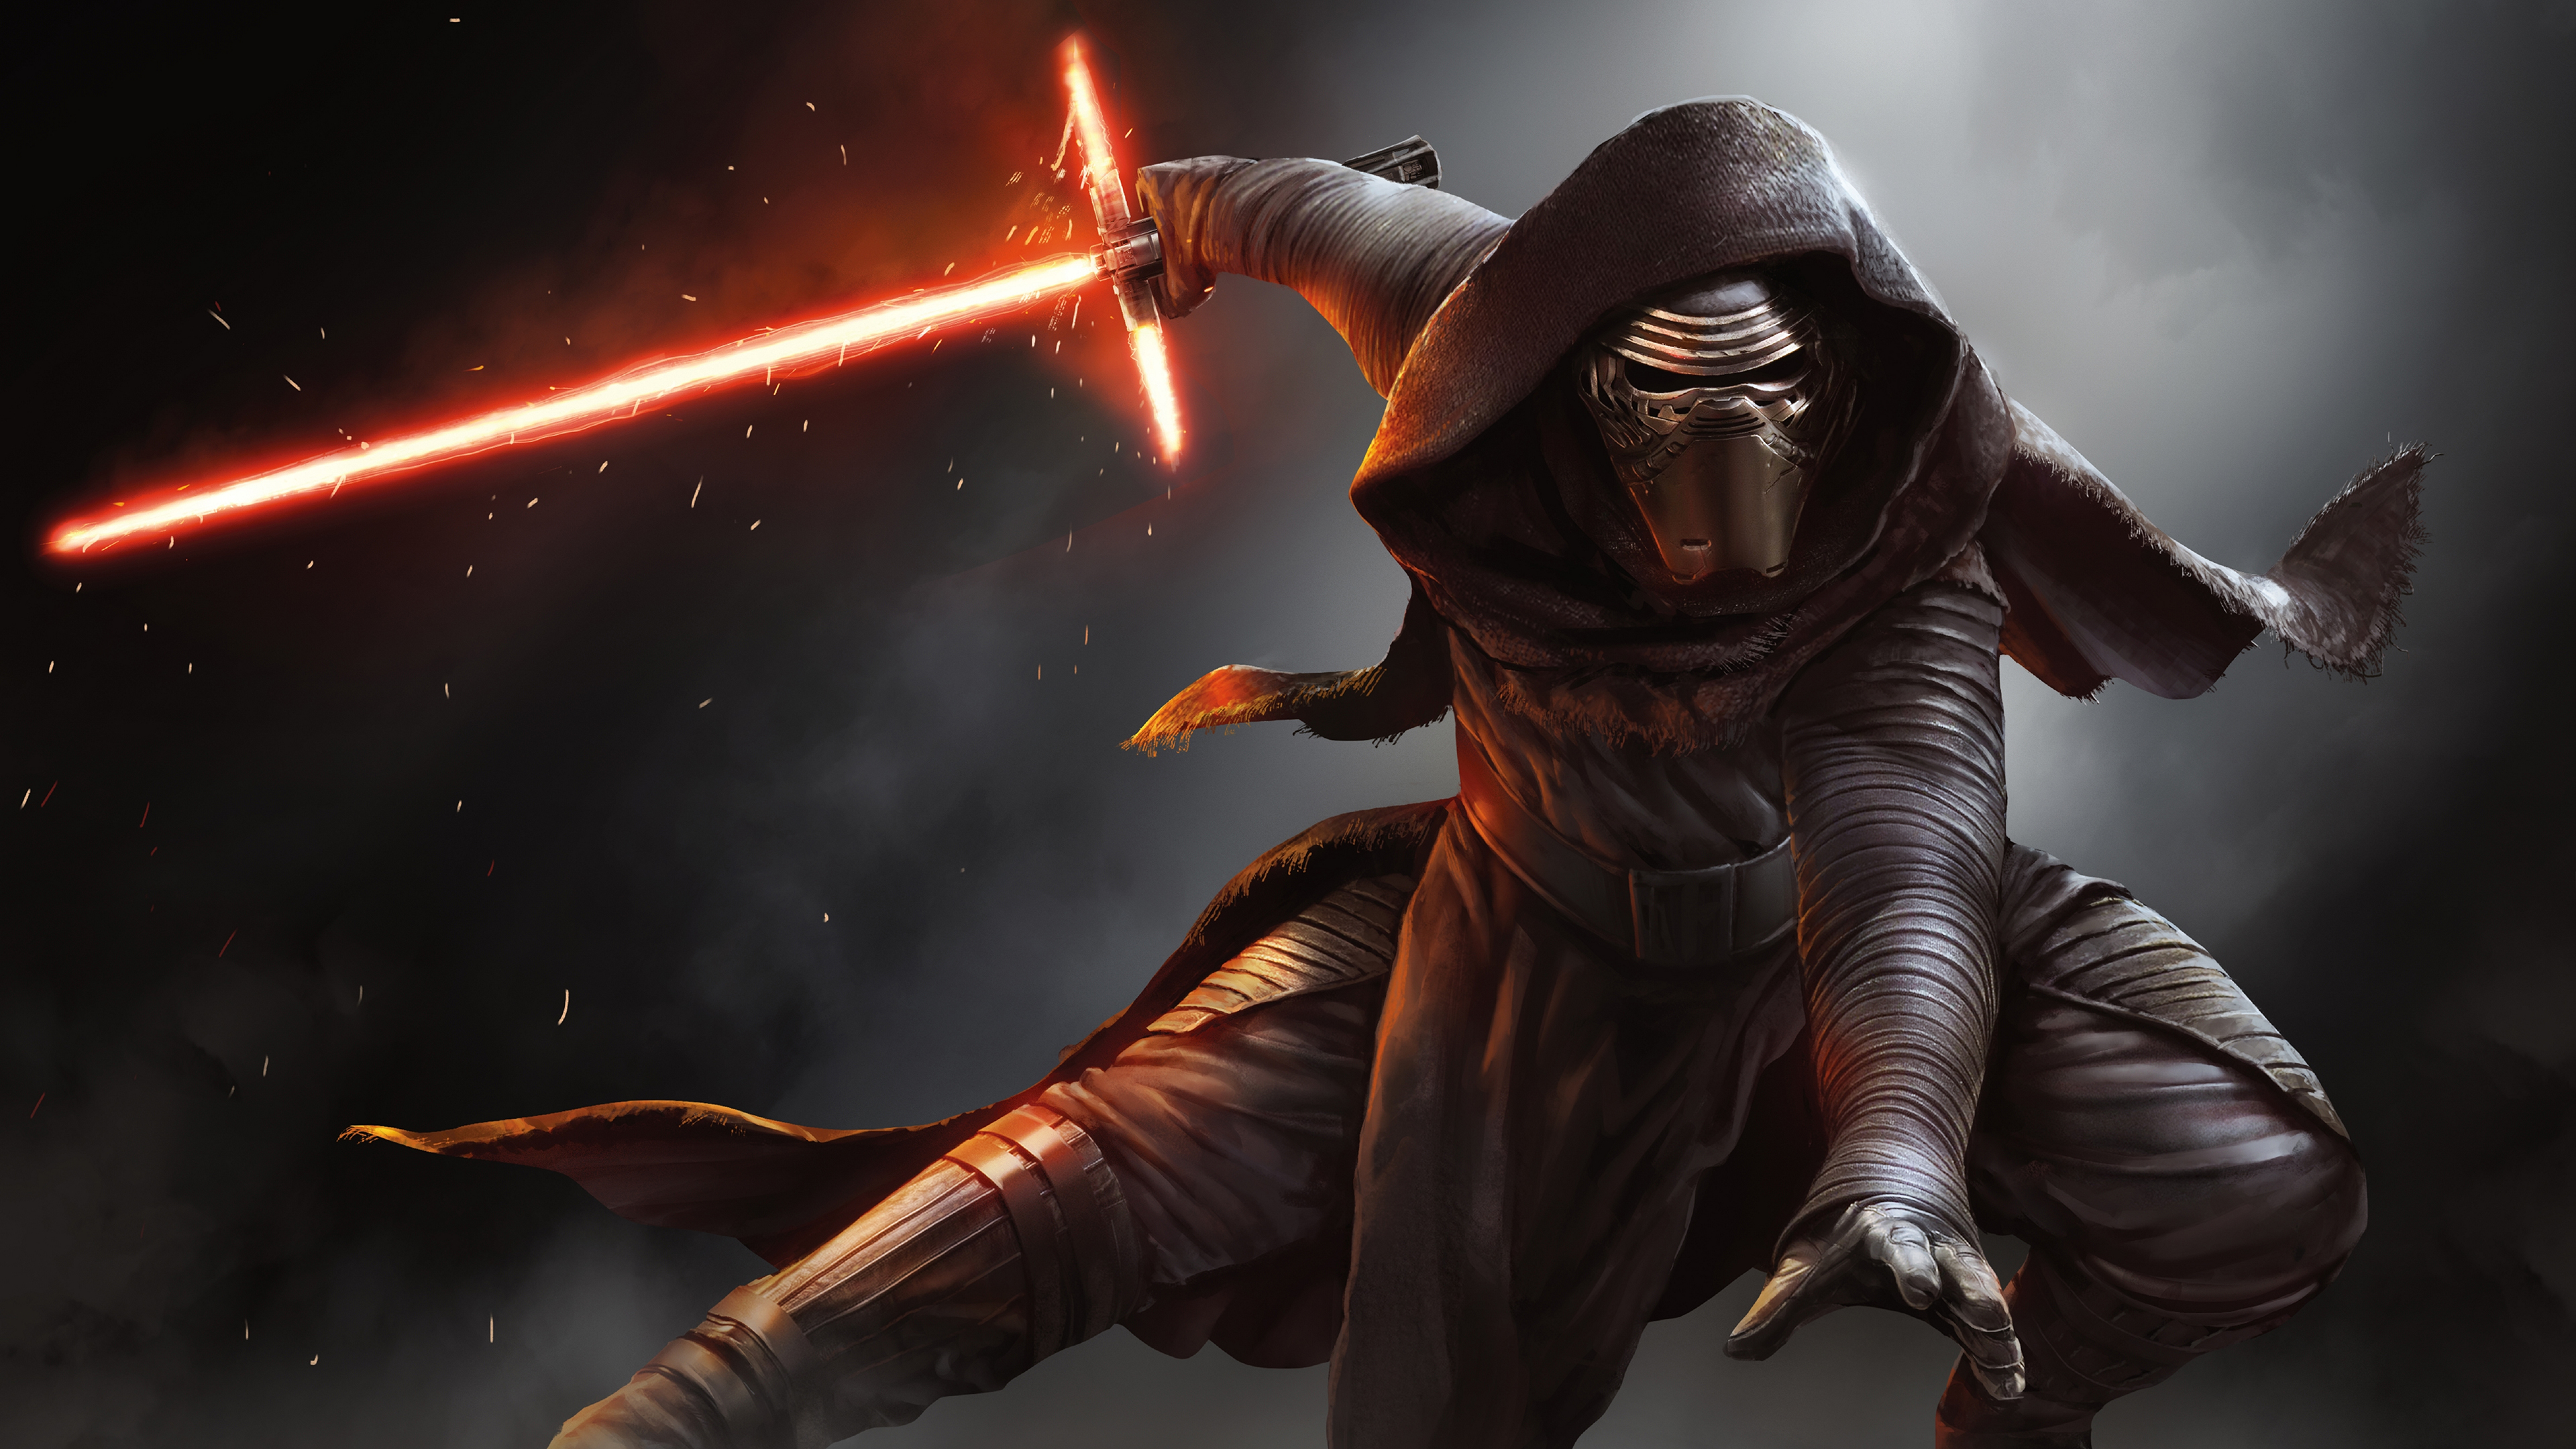 Free Download Star Wars The Force Awakens Wallpapers Awesome Wallpapers 3840x2160 For Your Desktop Mobile Tablet Explore 50 Force Awakens Wallpaper Reddit Star Wars 7 Wallpaper The Force Awakens